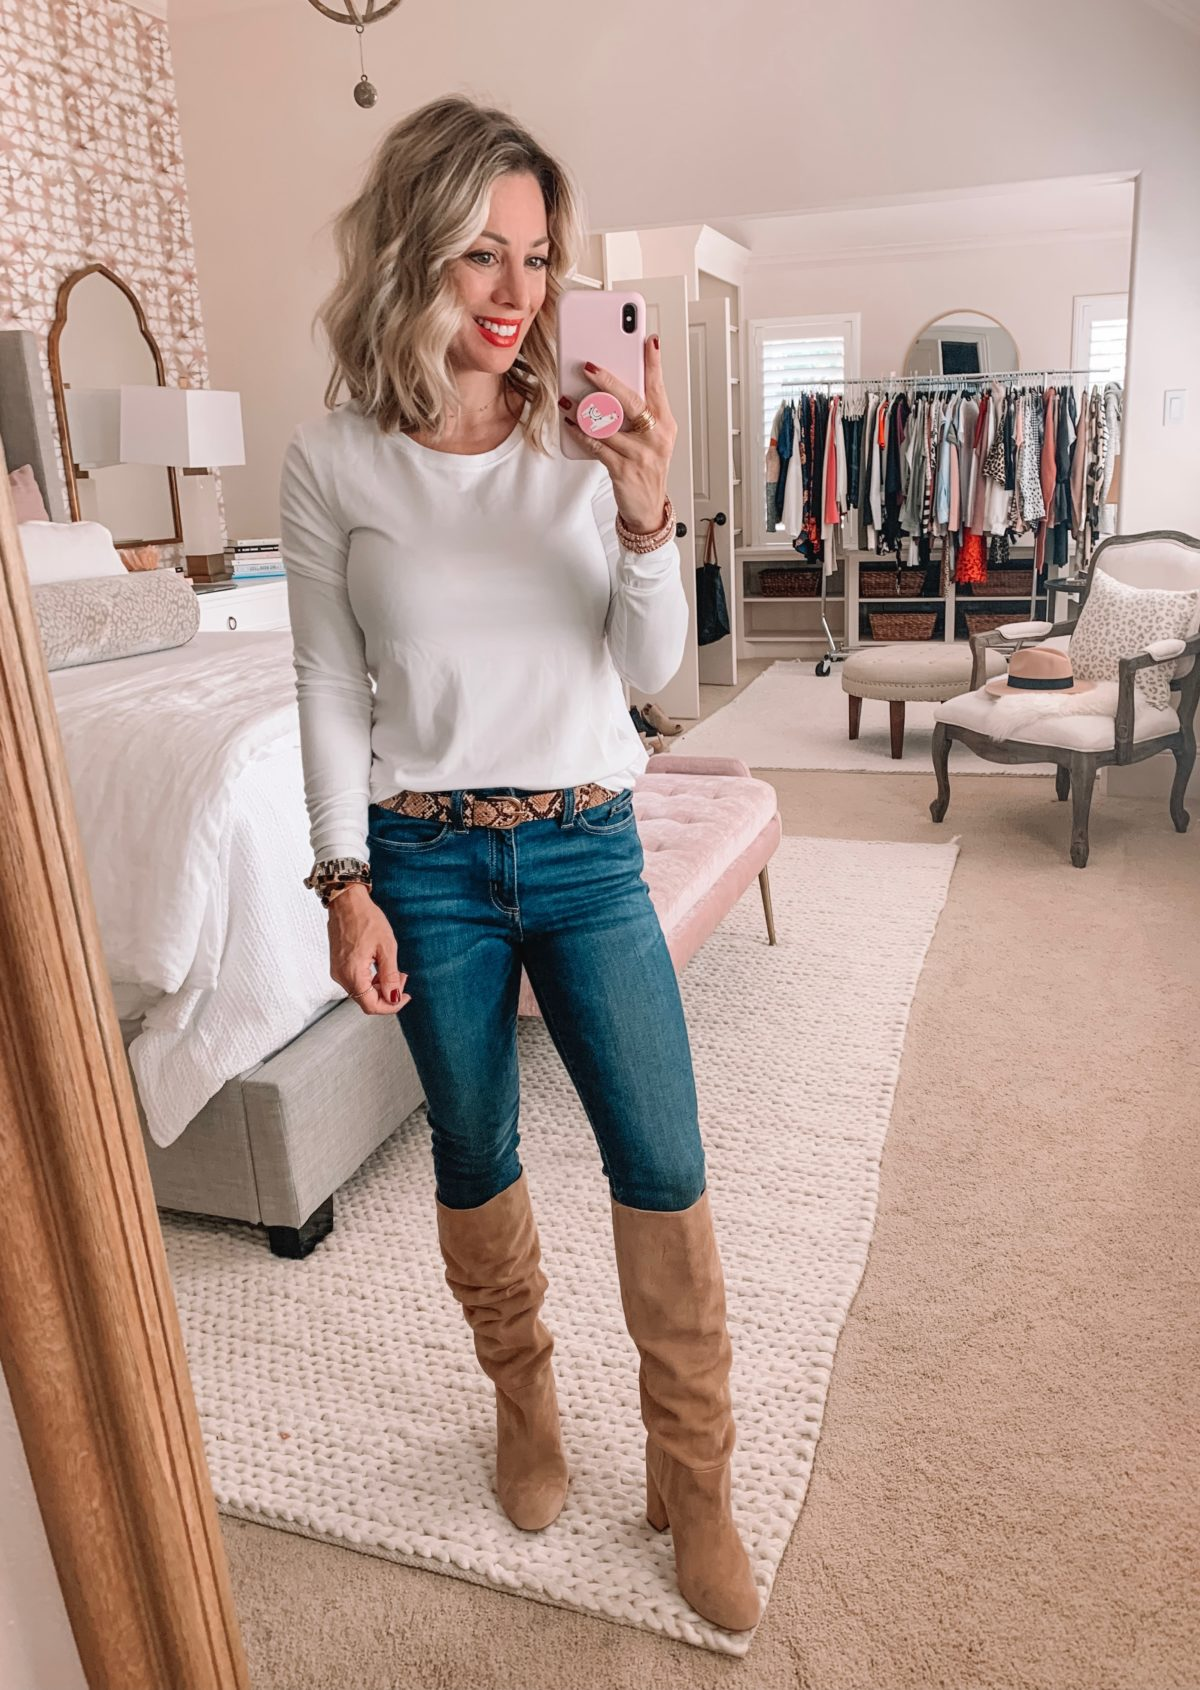 Amazon Prime Fashion- Long Sleeve Top and Jeans